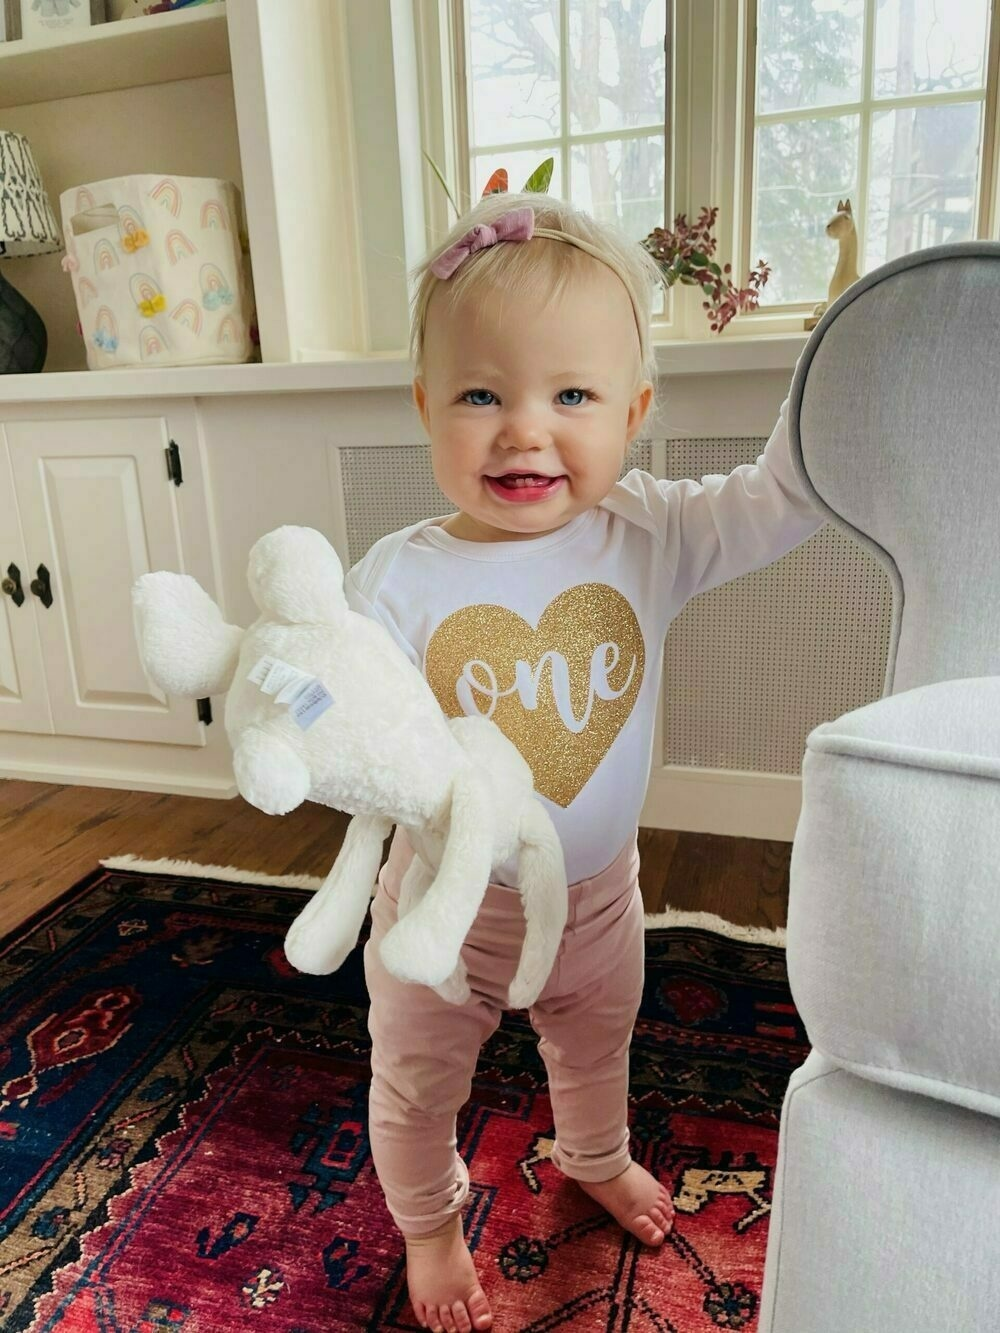 My one-year old daughter in her birthday shirt